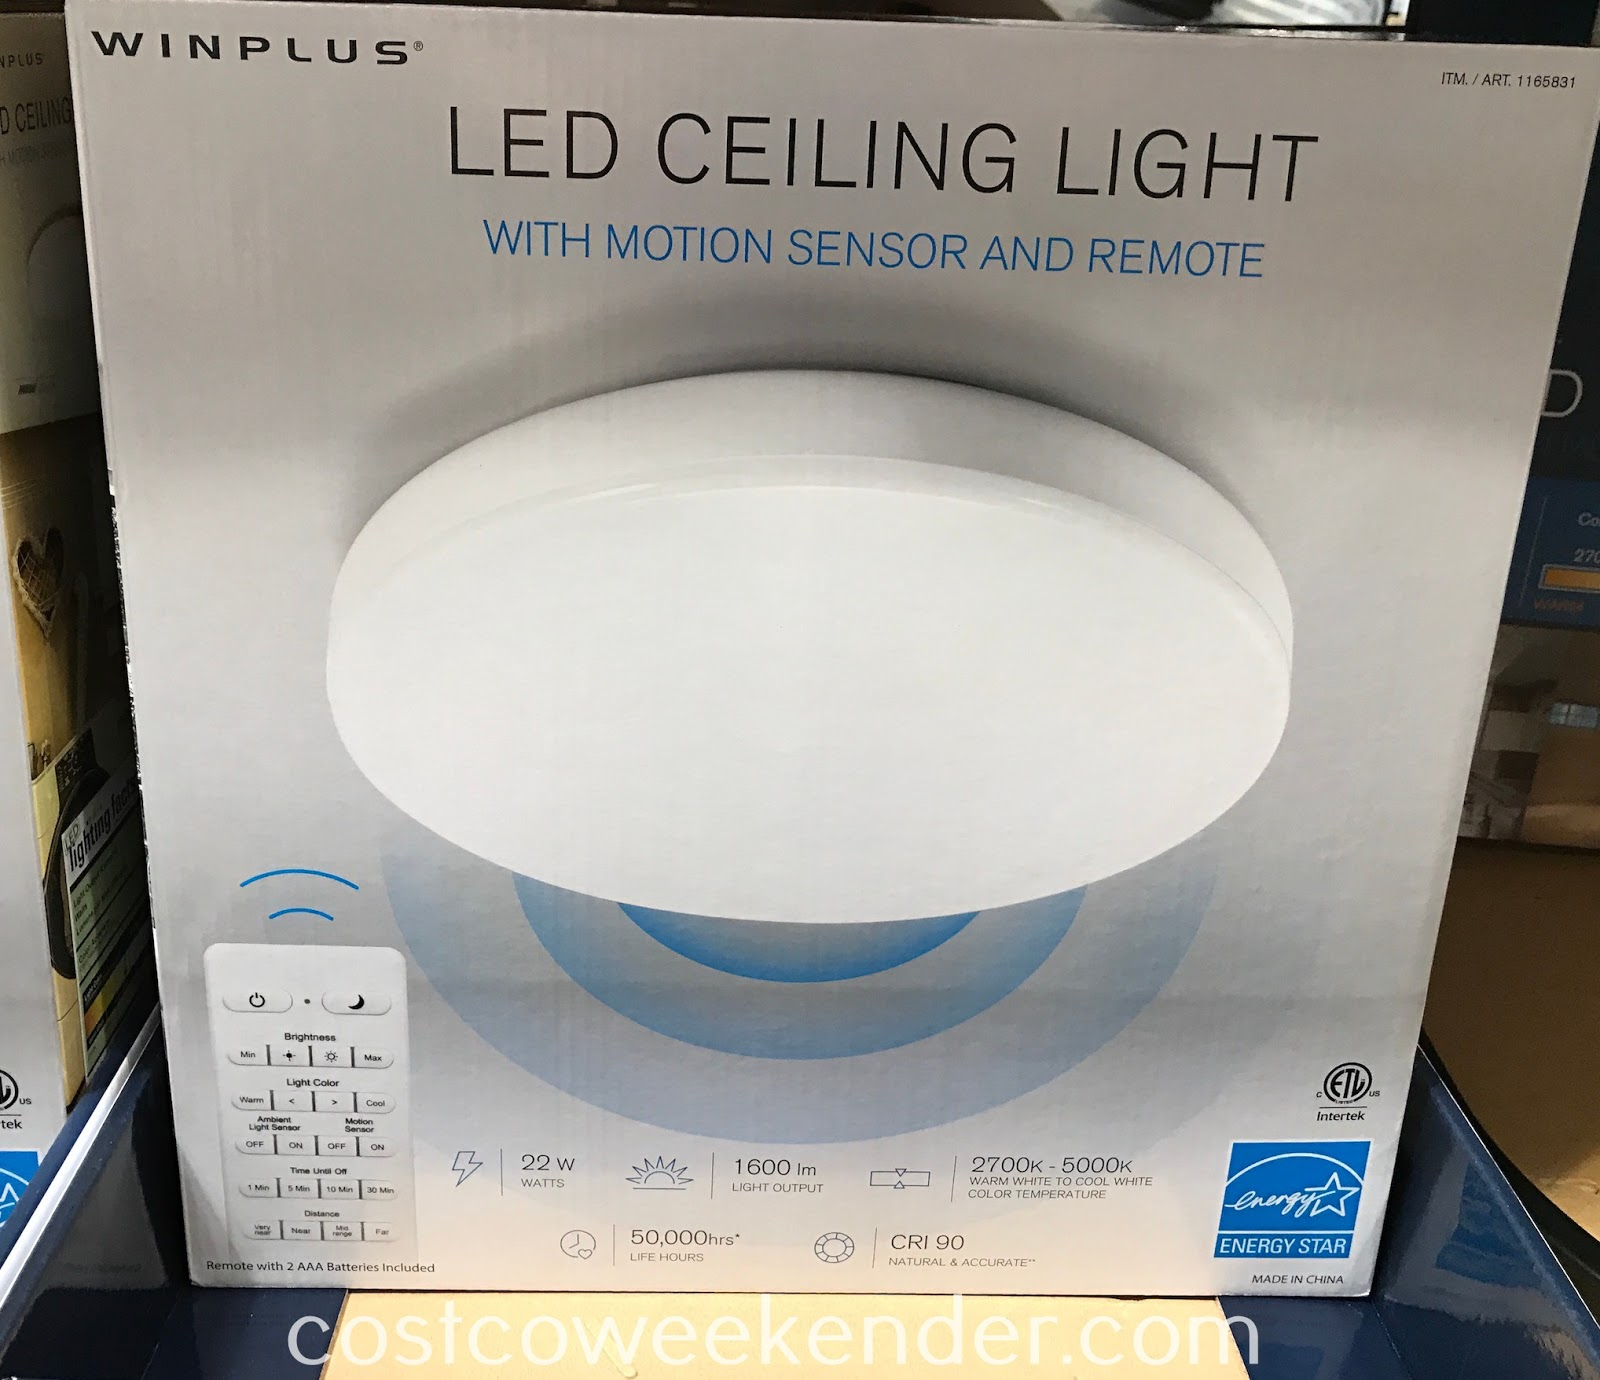 Ensure your home is well lit with the Winplus LED Ceiling Light with Motion Sensor and Remote